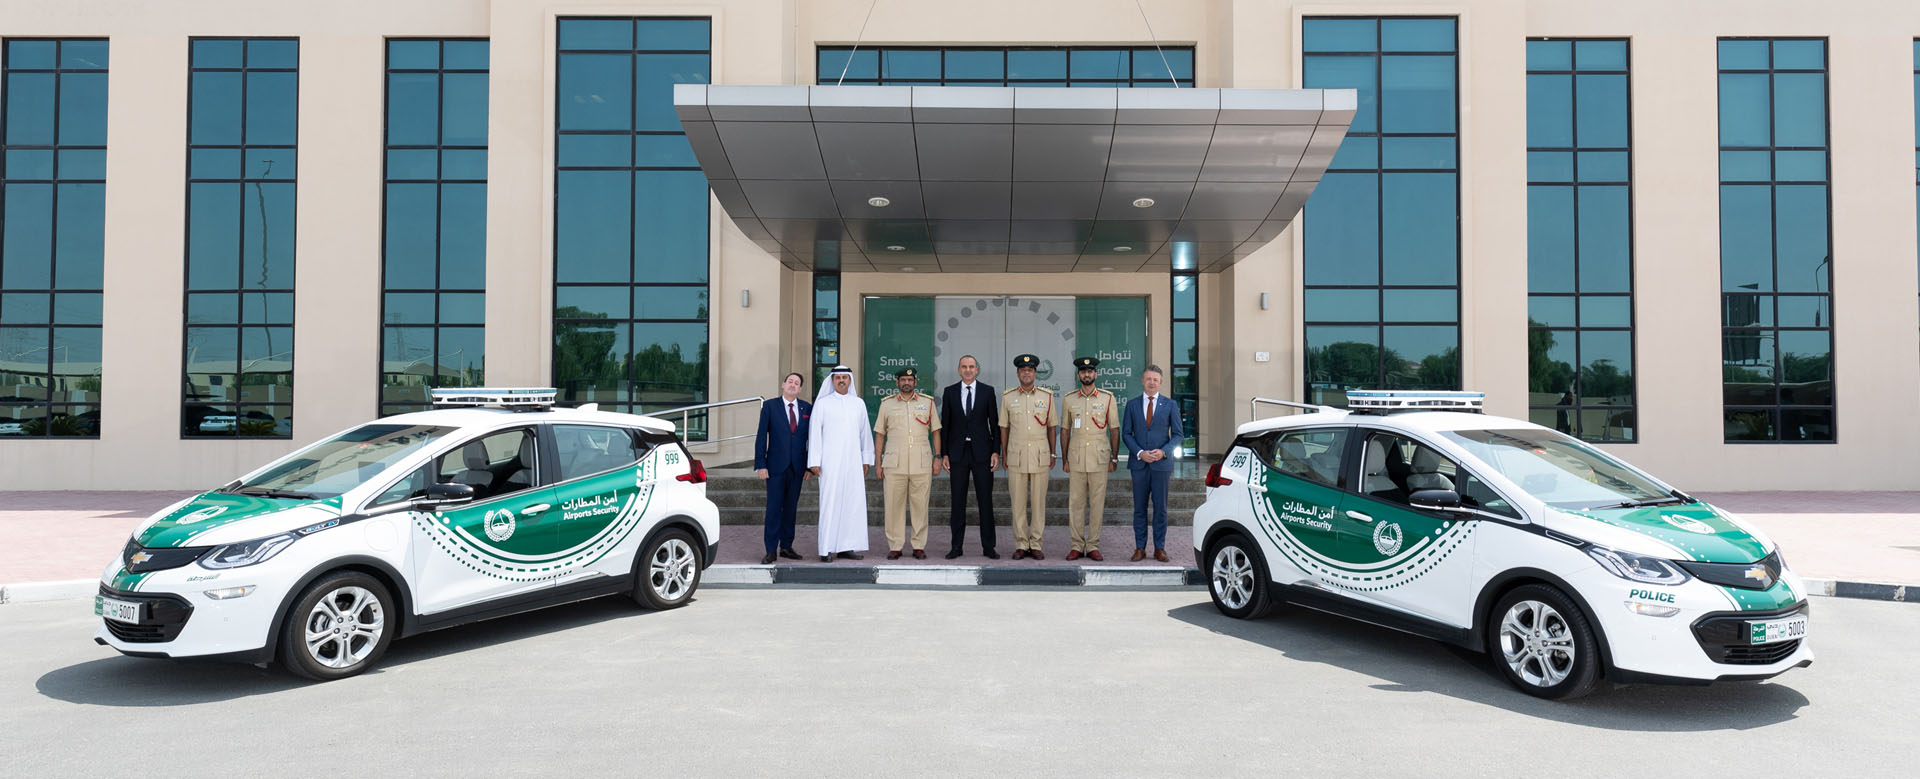 The Latest Addition To The Dubai Police Motor Pool Is